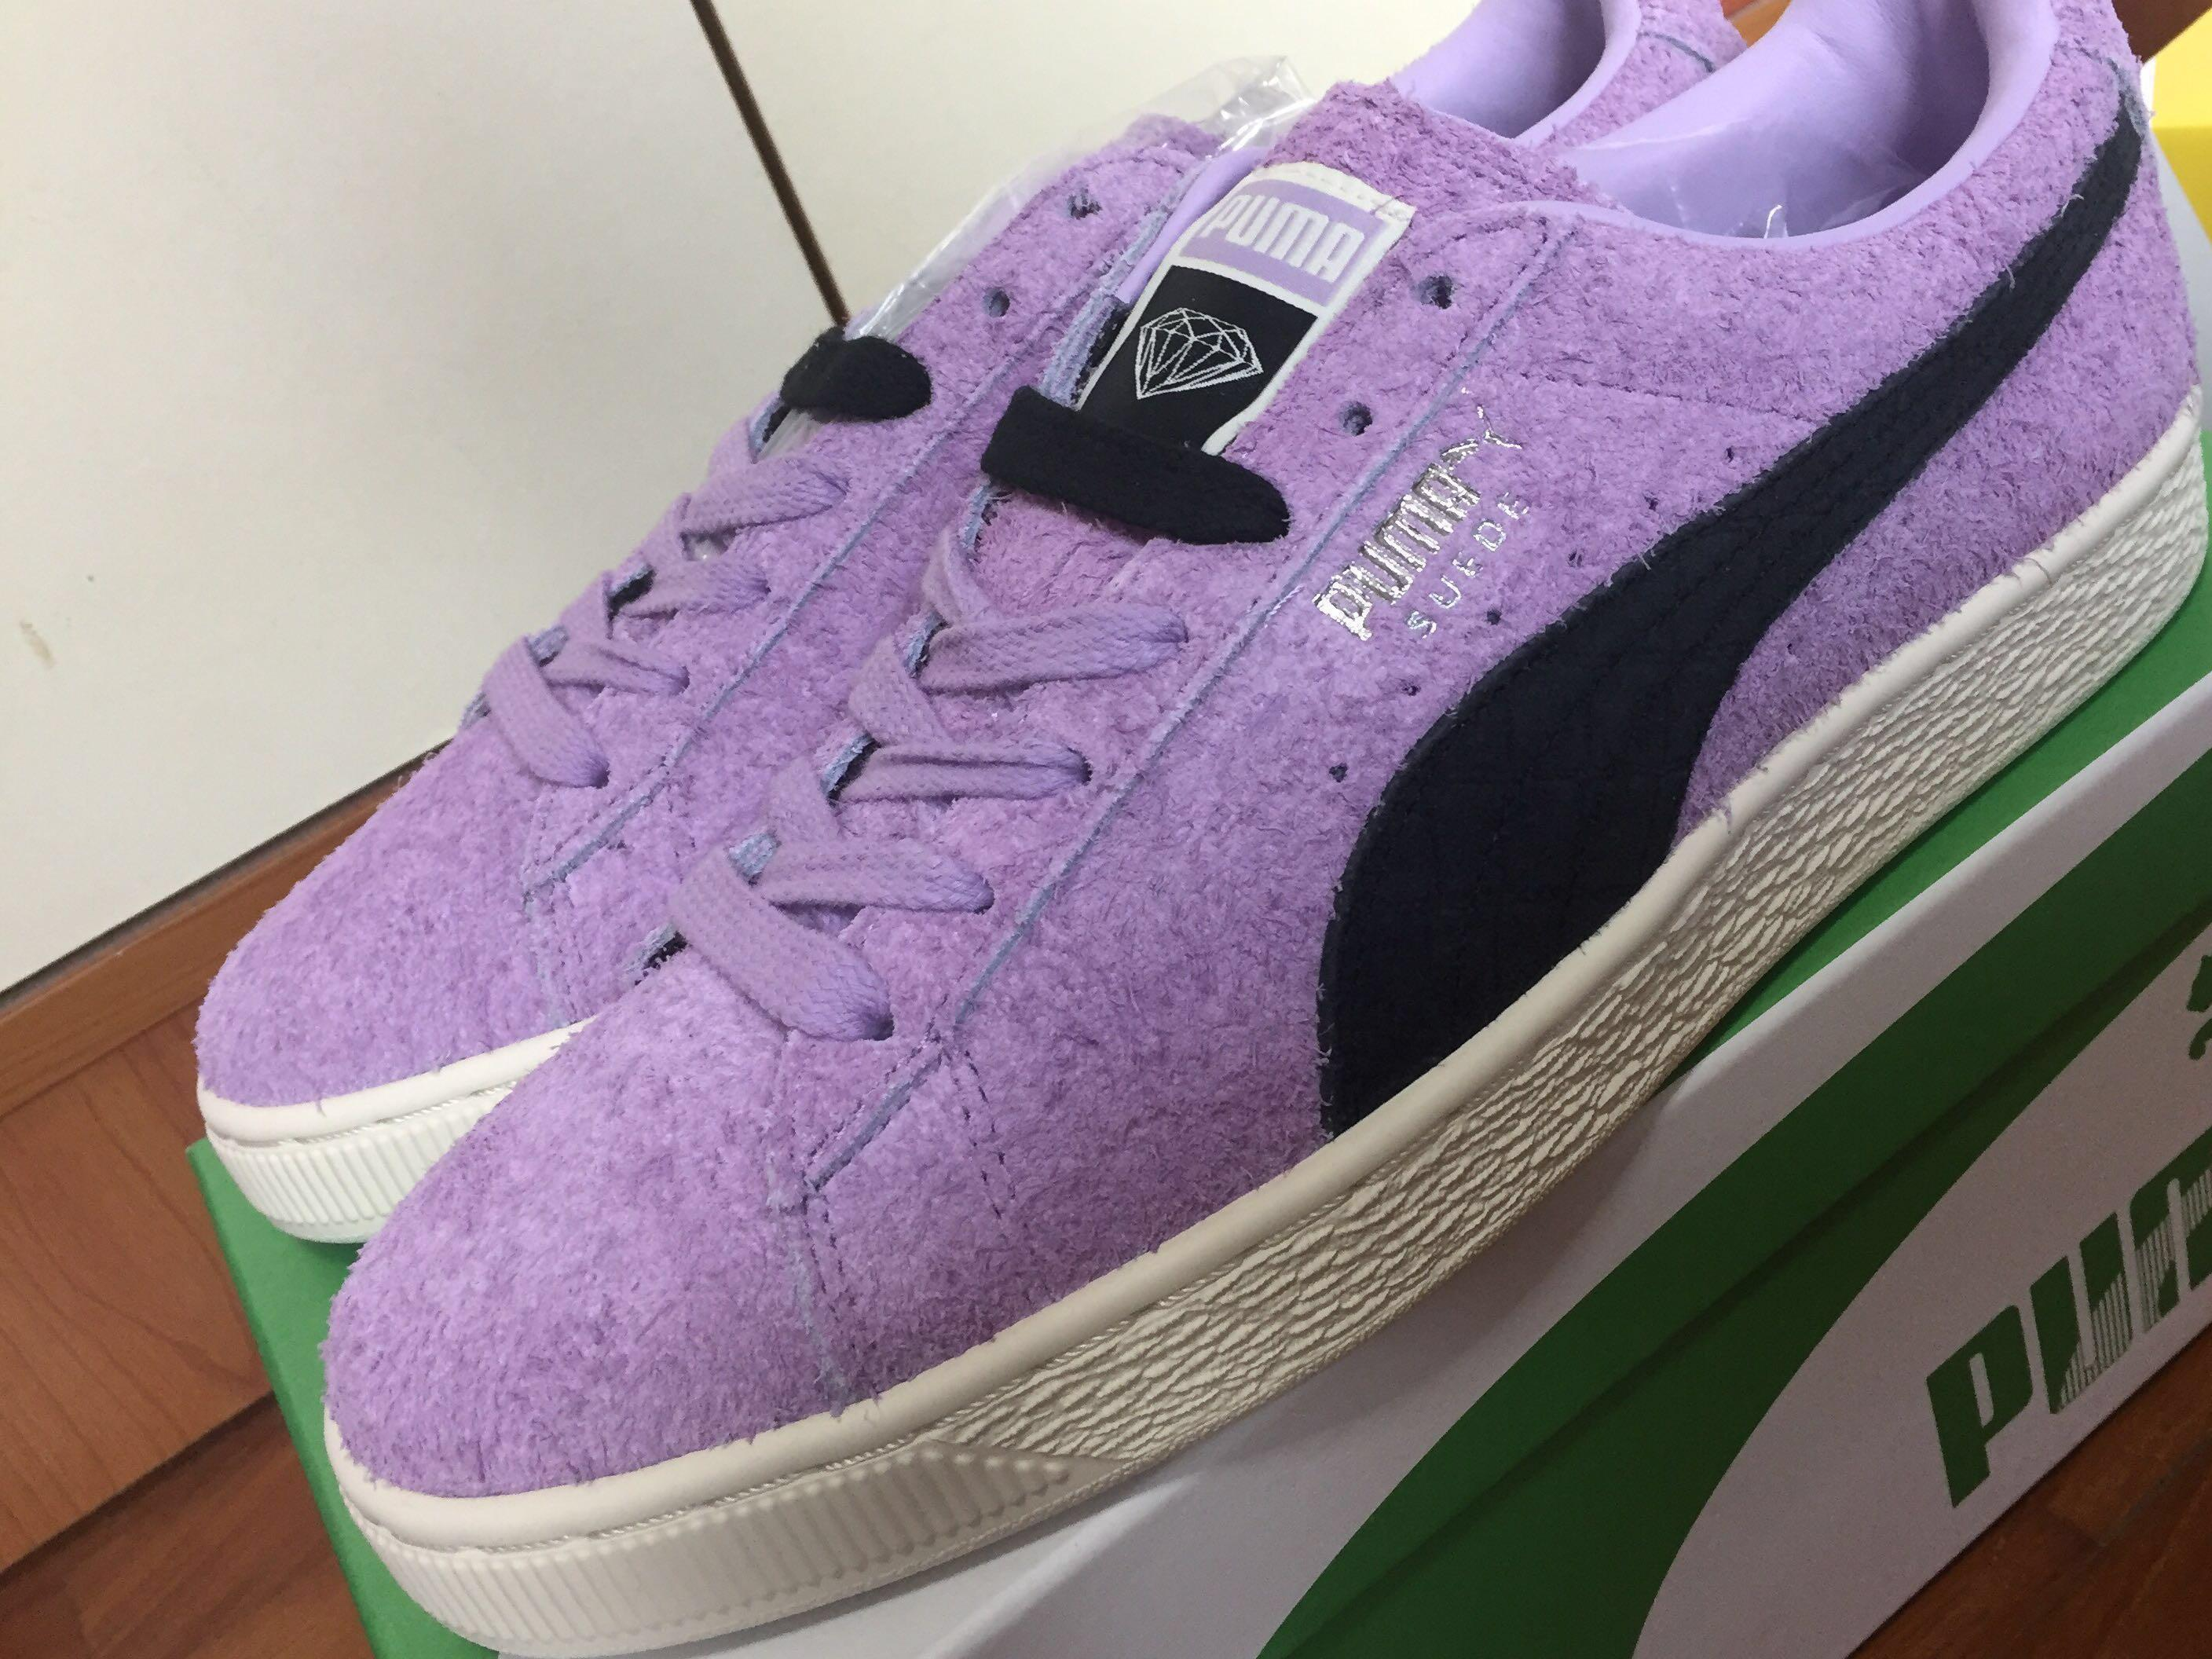 PUMA X DIAMOND SUPPLY CO. SUEDE, Luxury, Shoes on Carousell